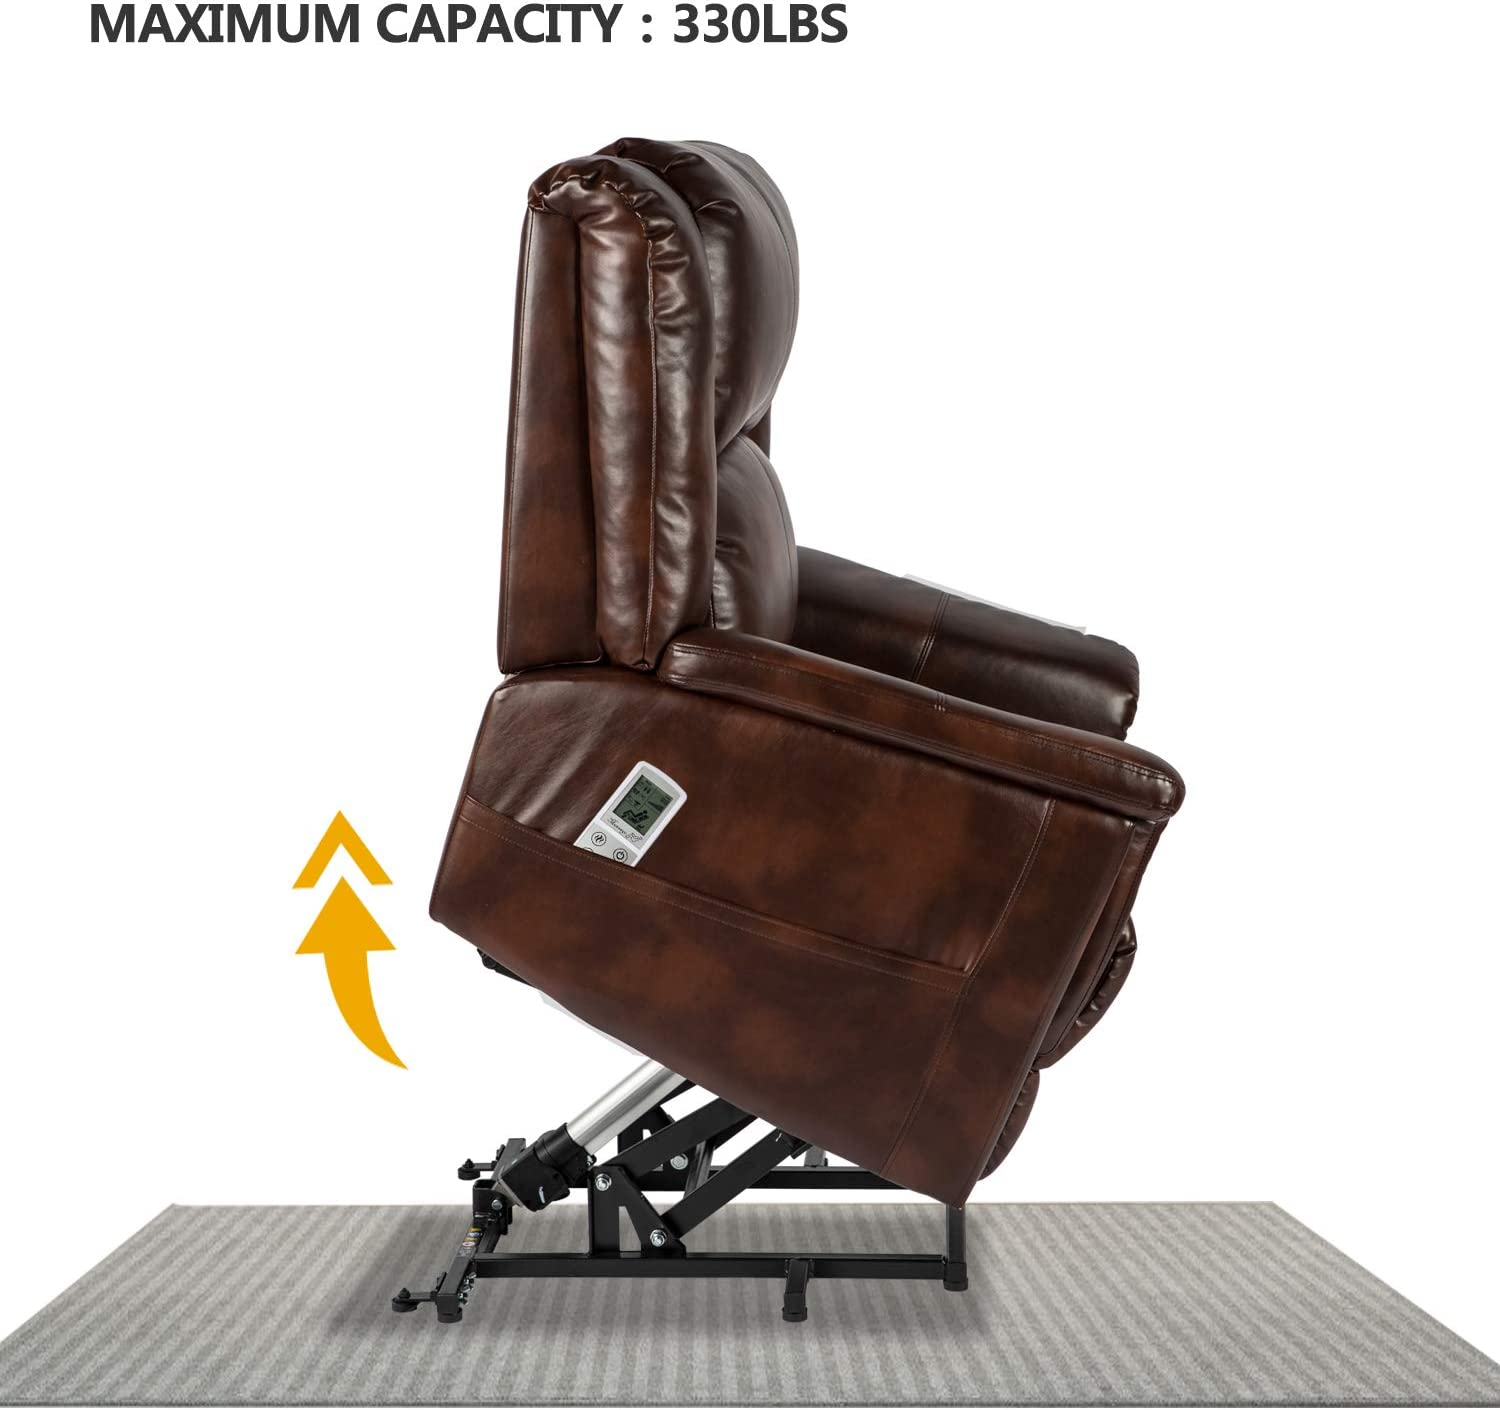 Aoxun Electric Power Lift Recliner Chair Sofa With Massage And Heat For Elderly Remote Control Pu Leather Lounge Brown Kitchen Dining